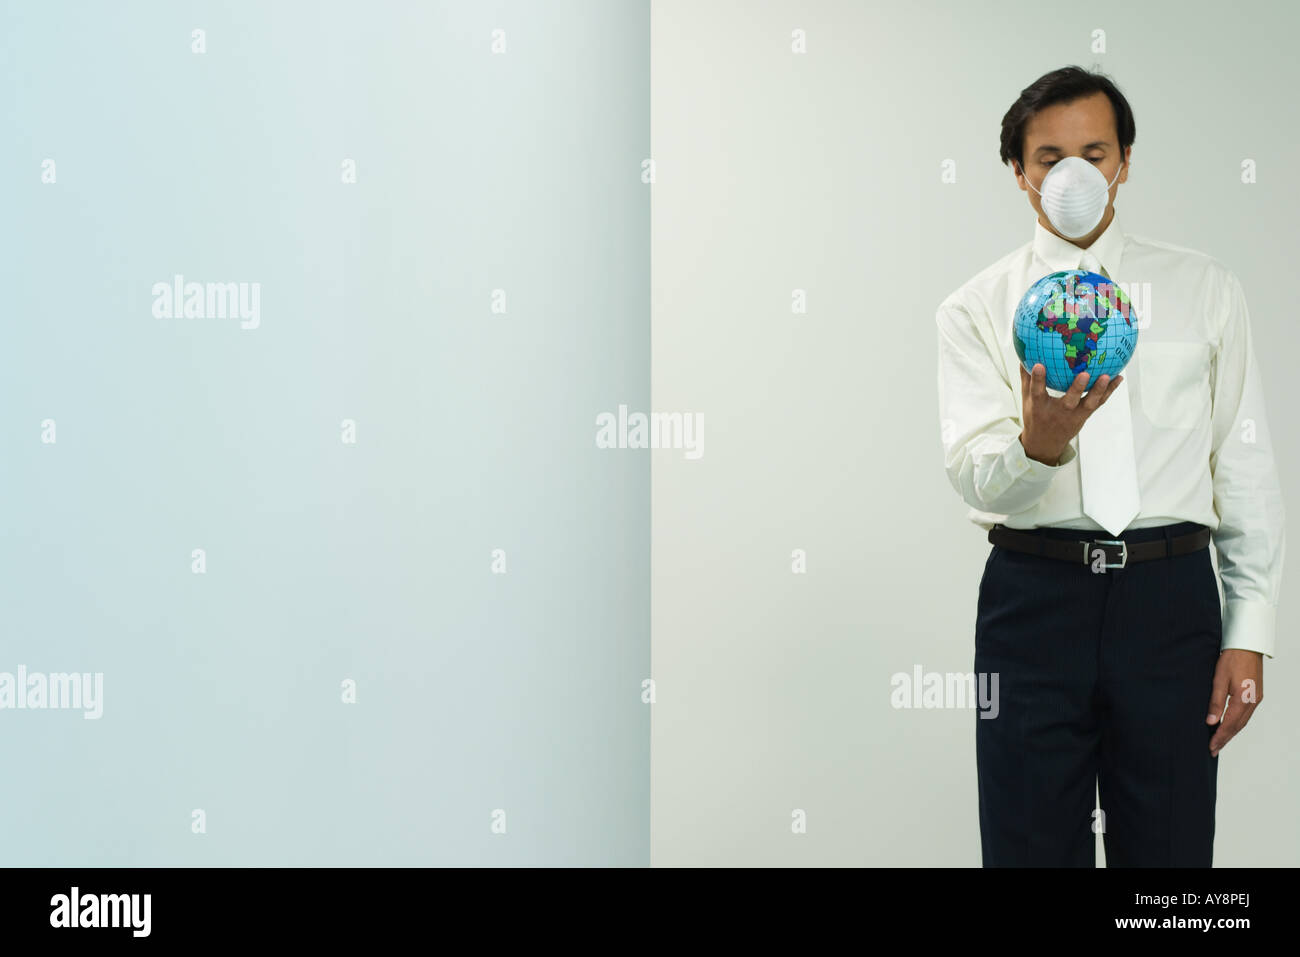 Man wearing pollution mask, holding globe, eyes closed - Stock Image